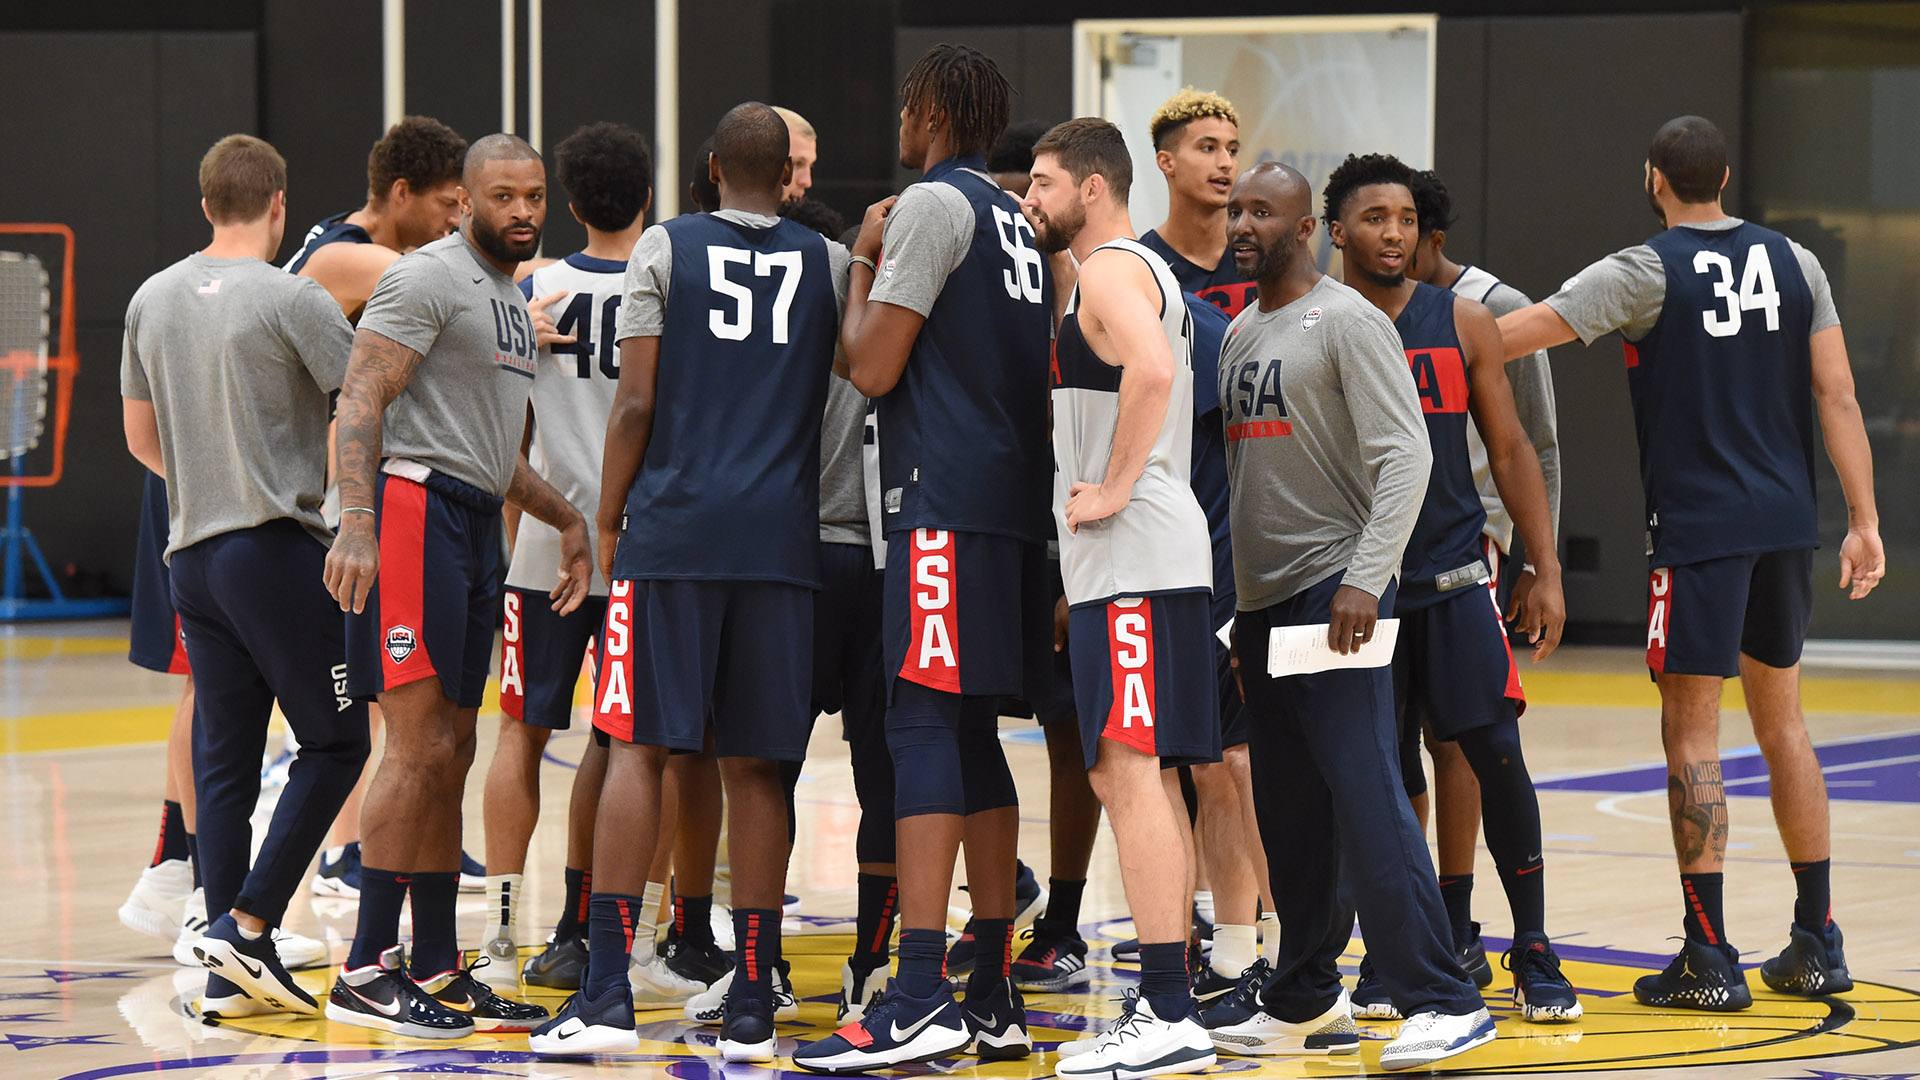 USA Basketball Men's National Team